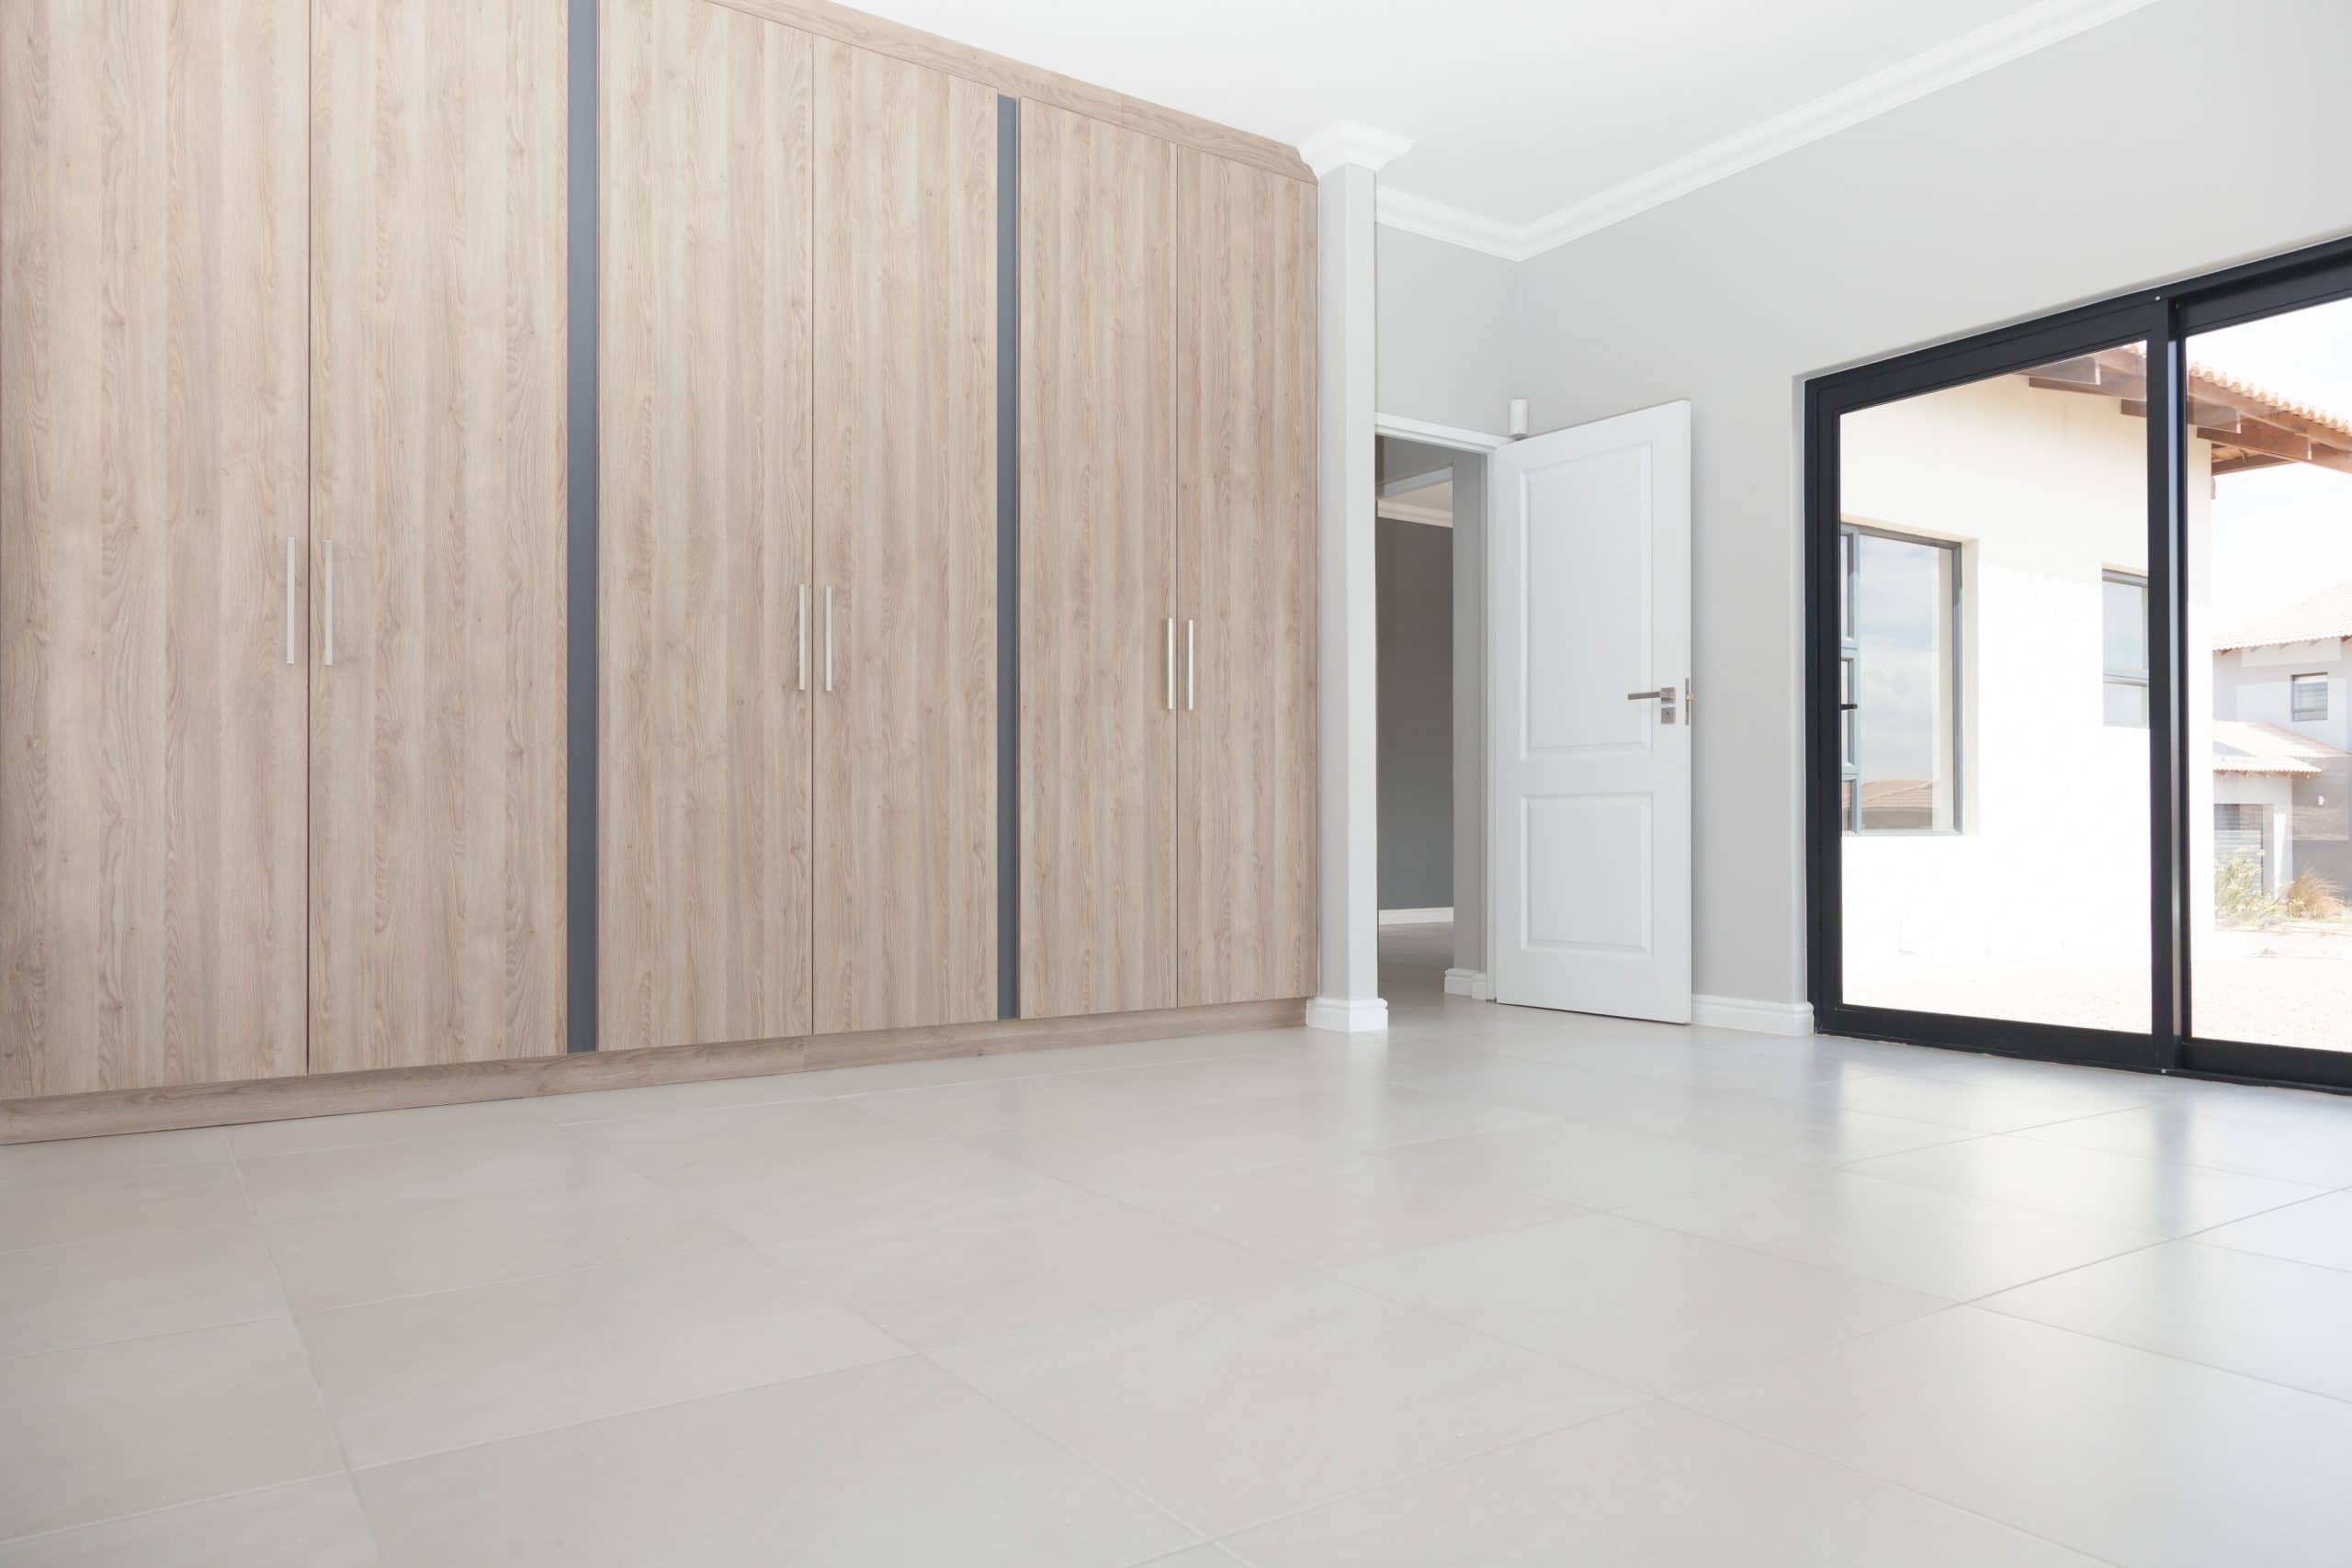 modern bedroom cupboards with stainless handles and cement flooring